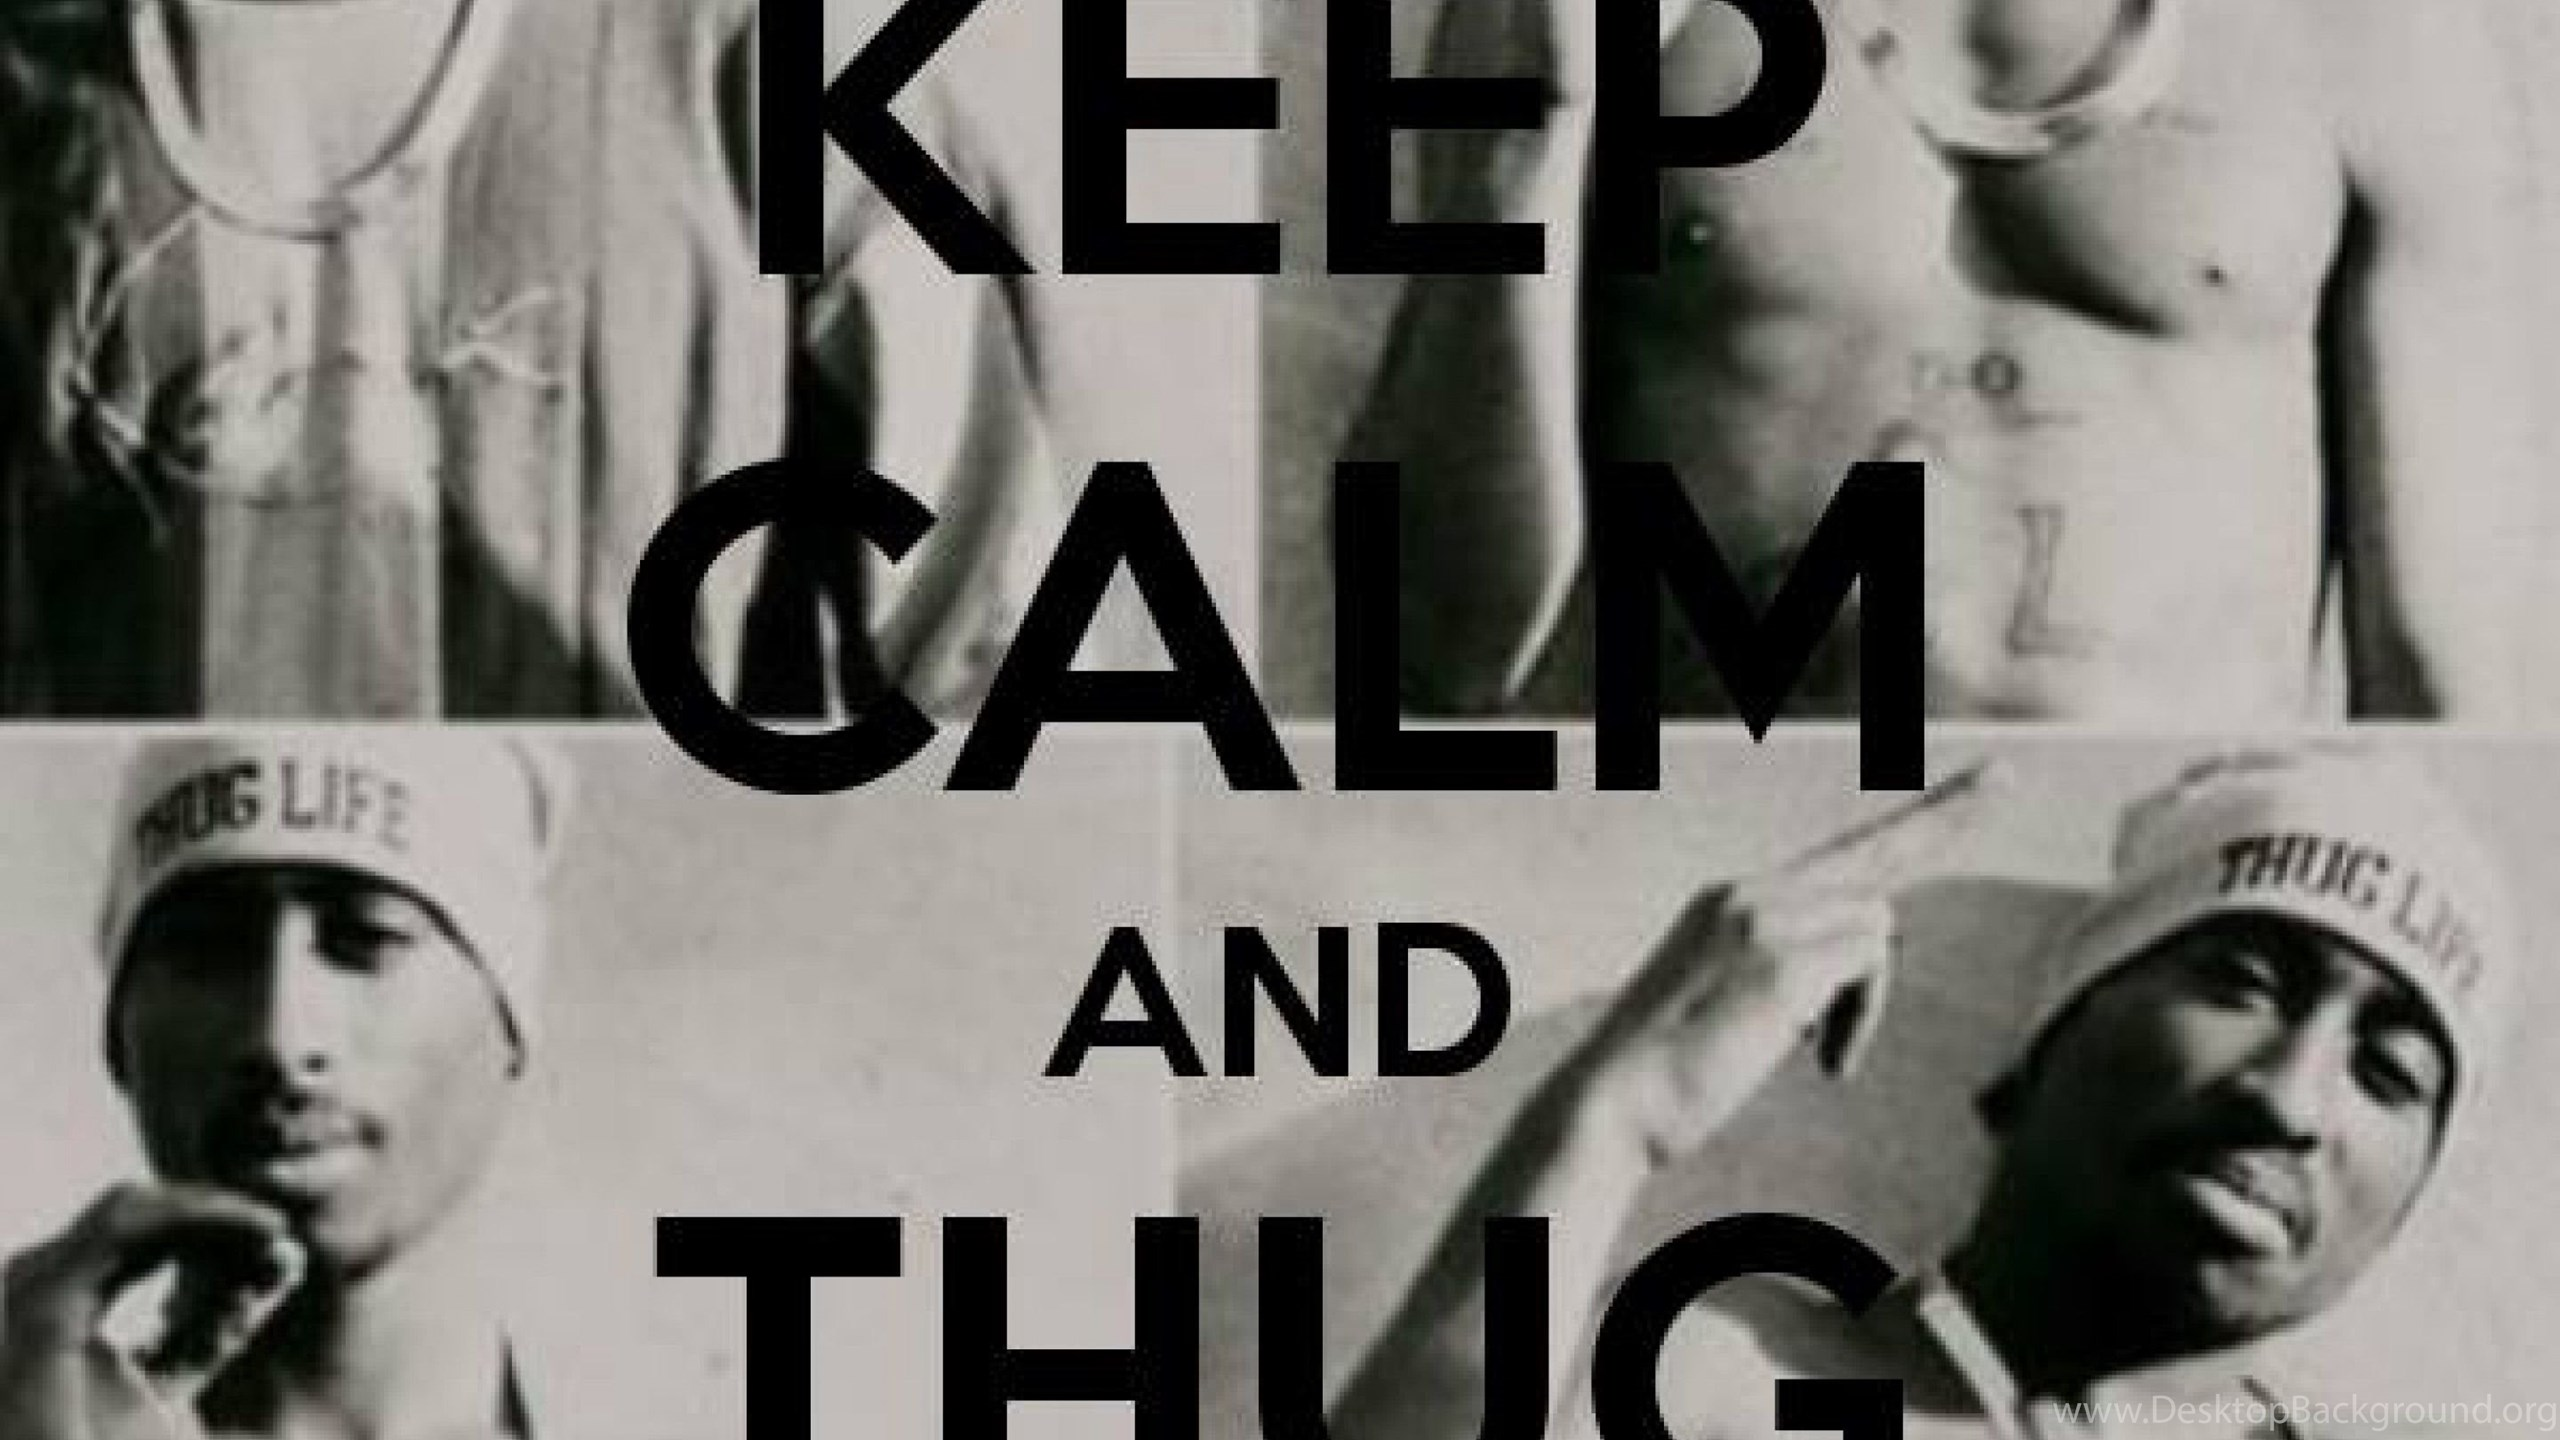 Keep calm and thug life wallpapers at mywallpapergalaxy desktop netbook voltagebd Images